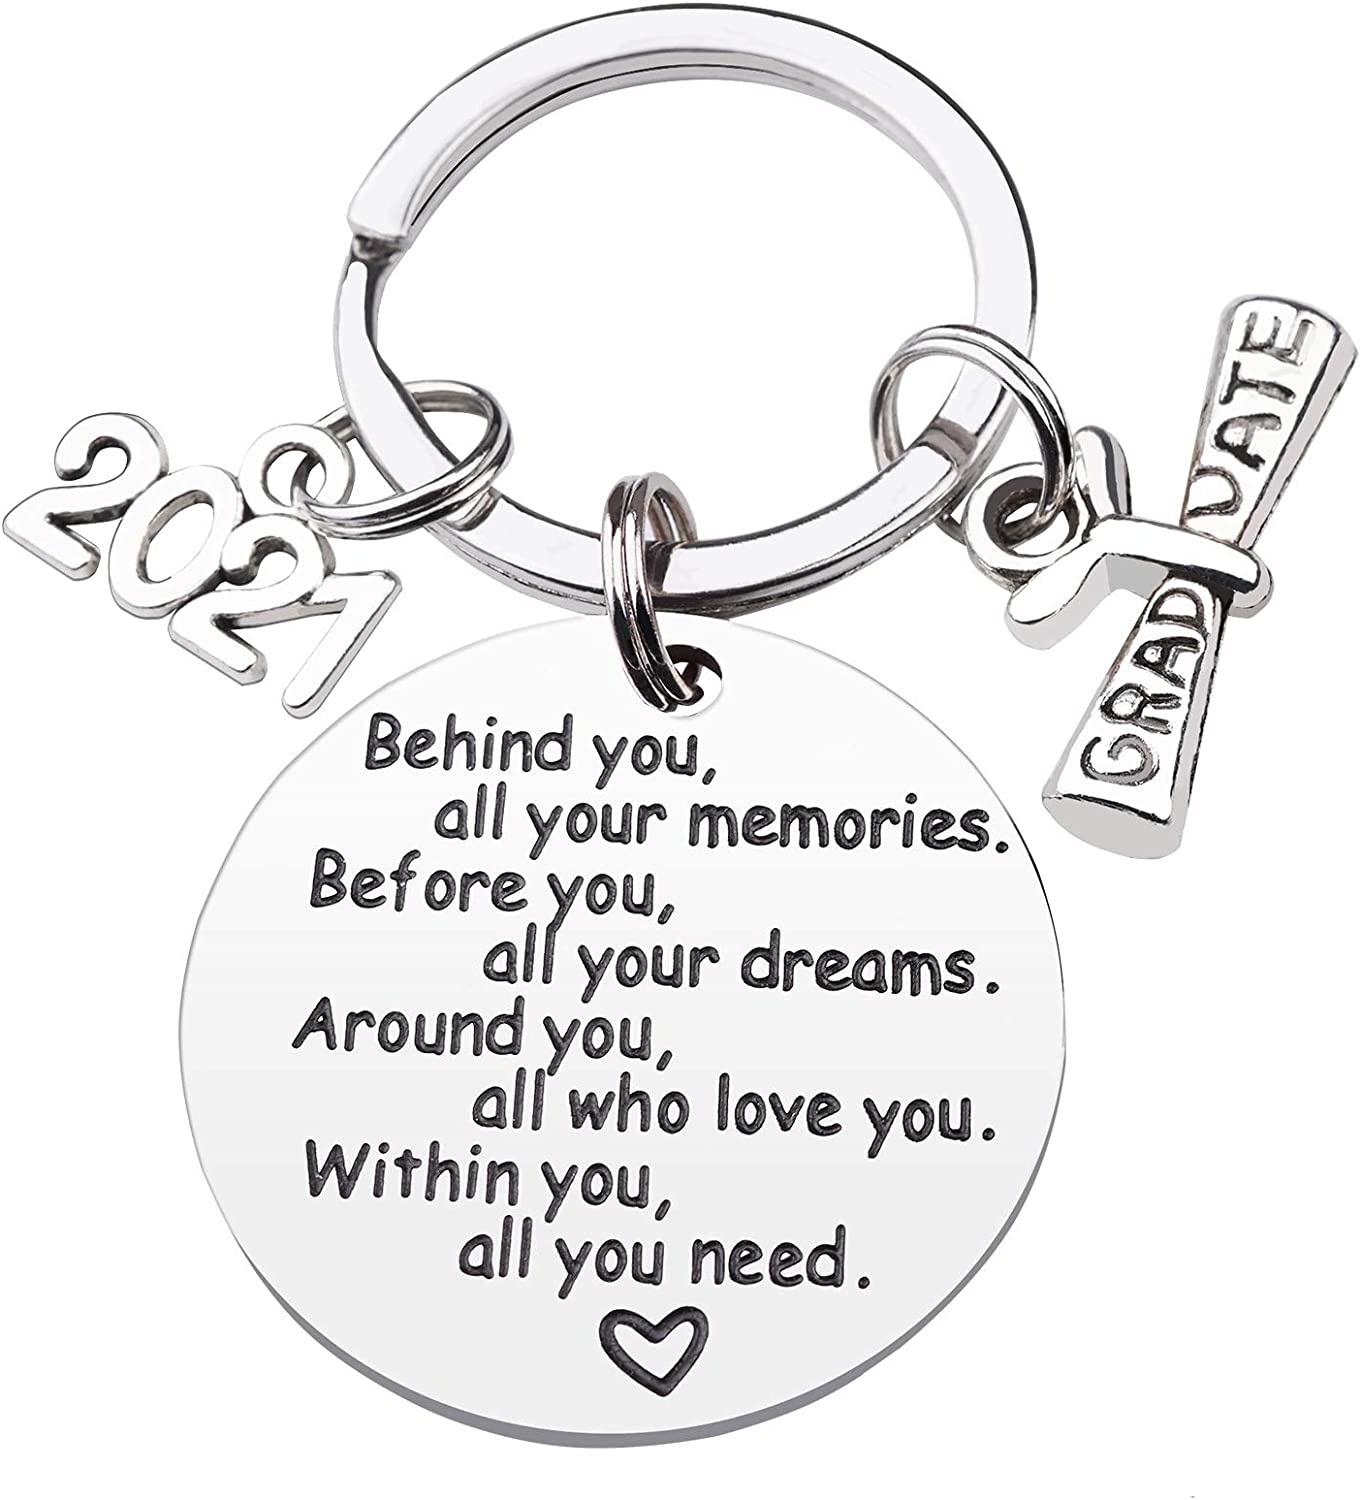 CDLong Class of 2021 Graduation Keychain - Senior 2021 Graduation Gifts for Her/Him, Inspirational Gifts for College Graduation / High School Graduation, Made of Stainless Steel